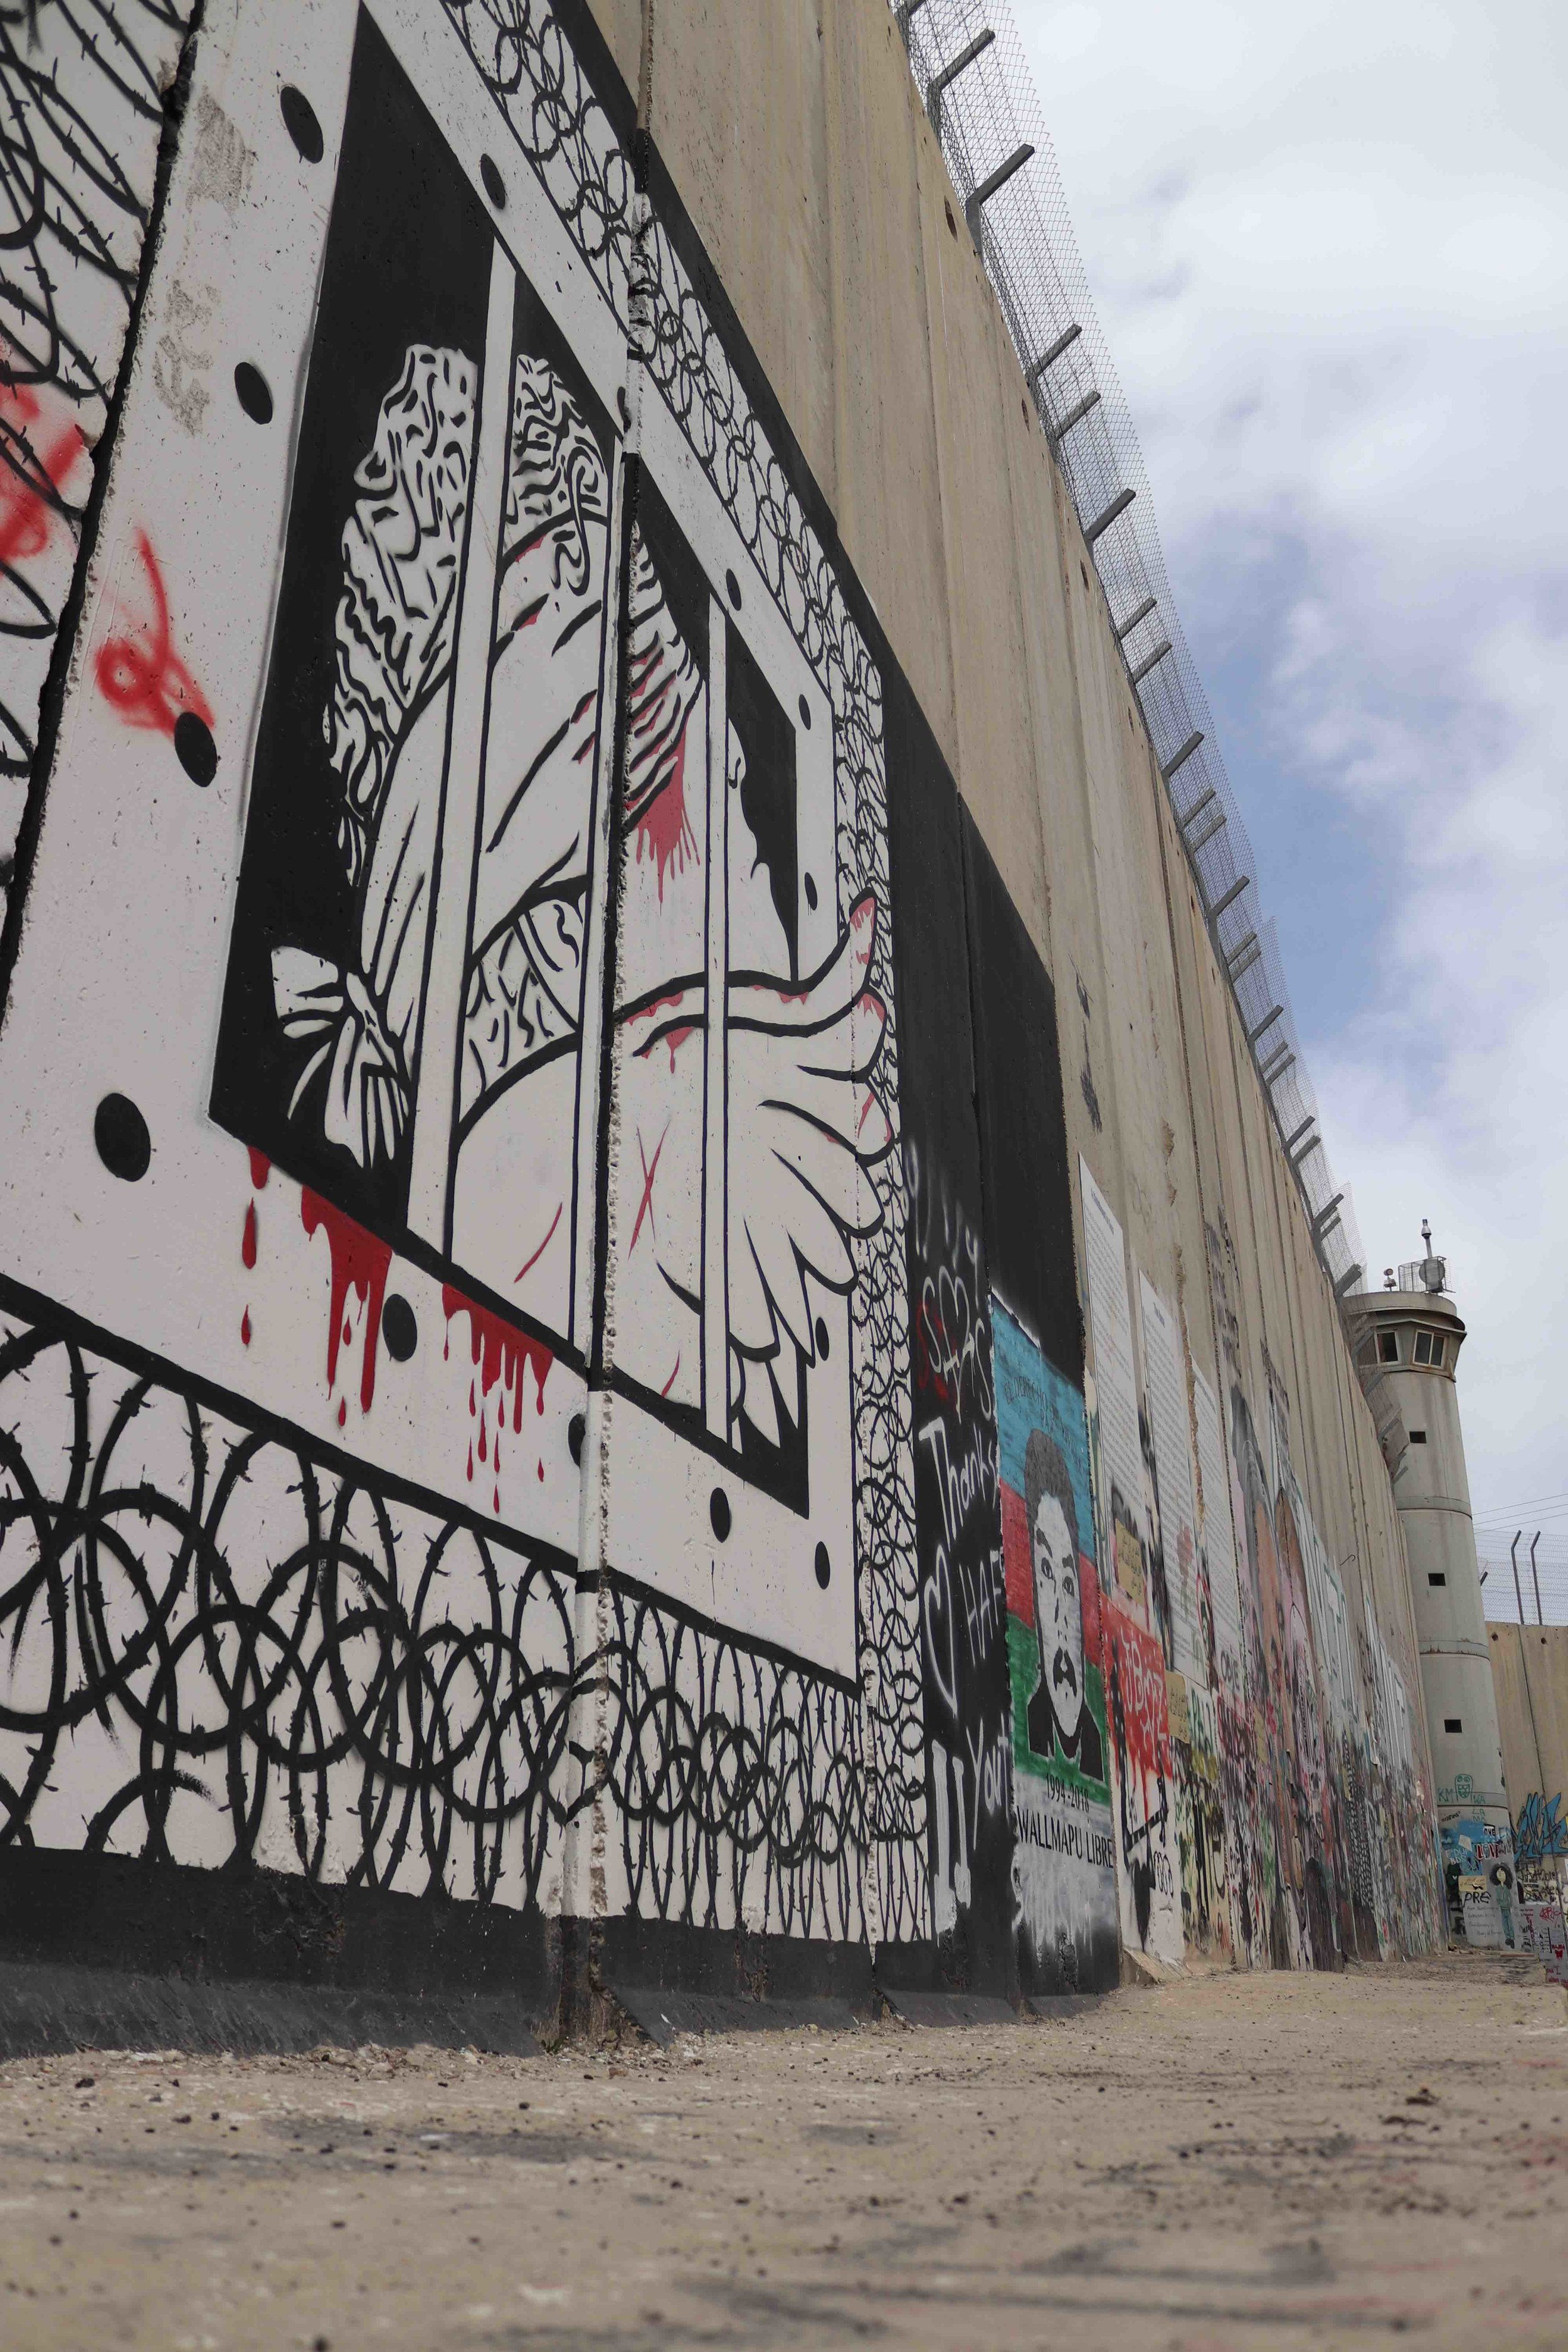 A long view of the graffiti on the wall separating Bethlehem from Jeruslem.